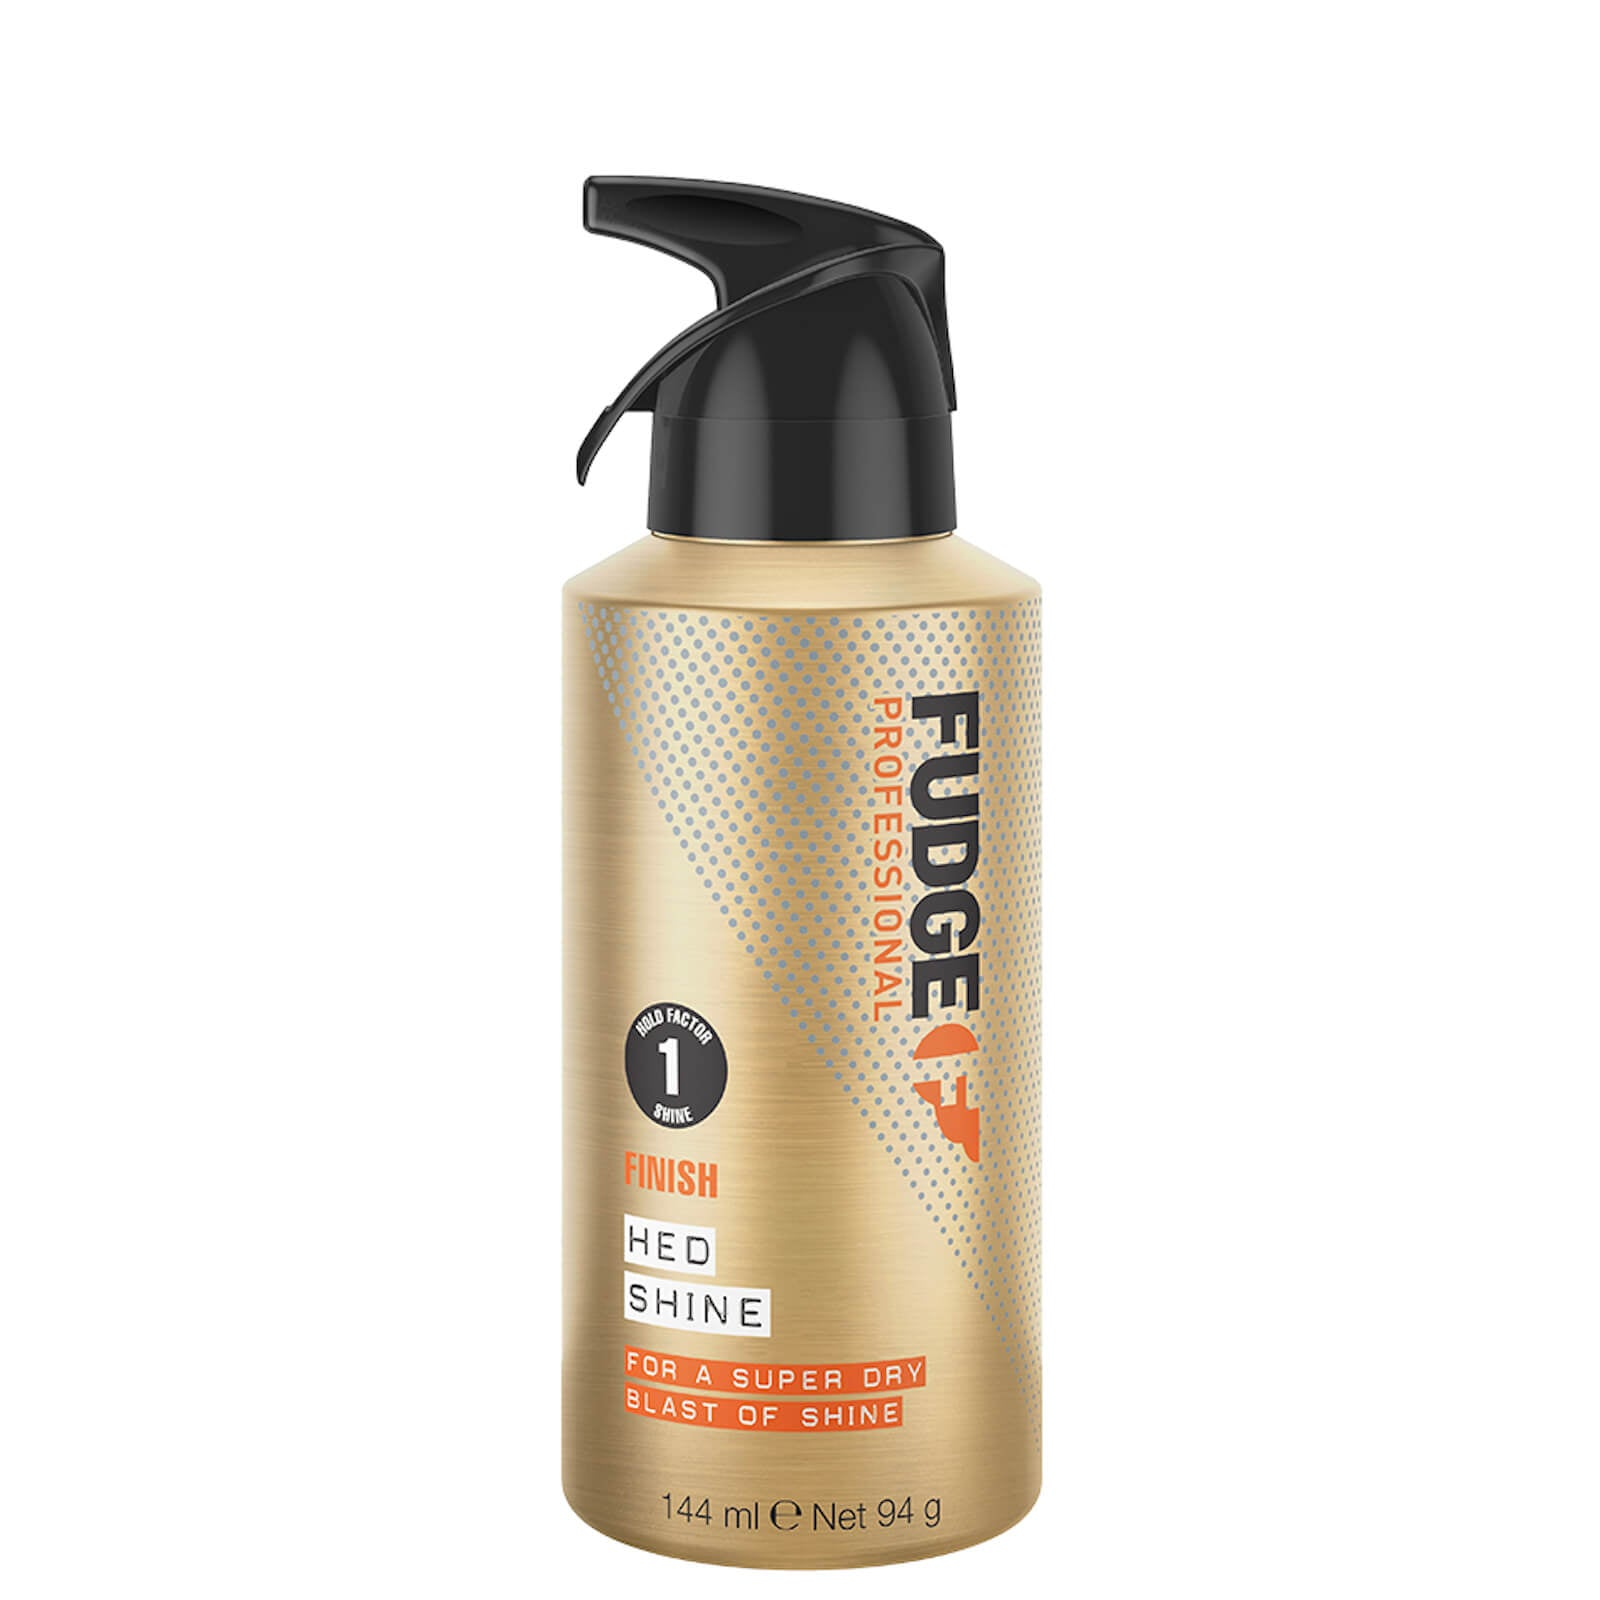 Fudge Hed Shine 144ml